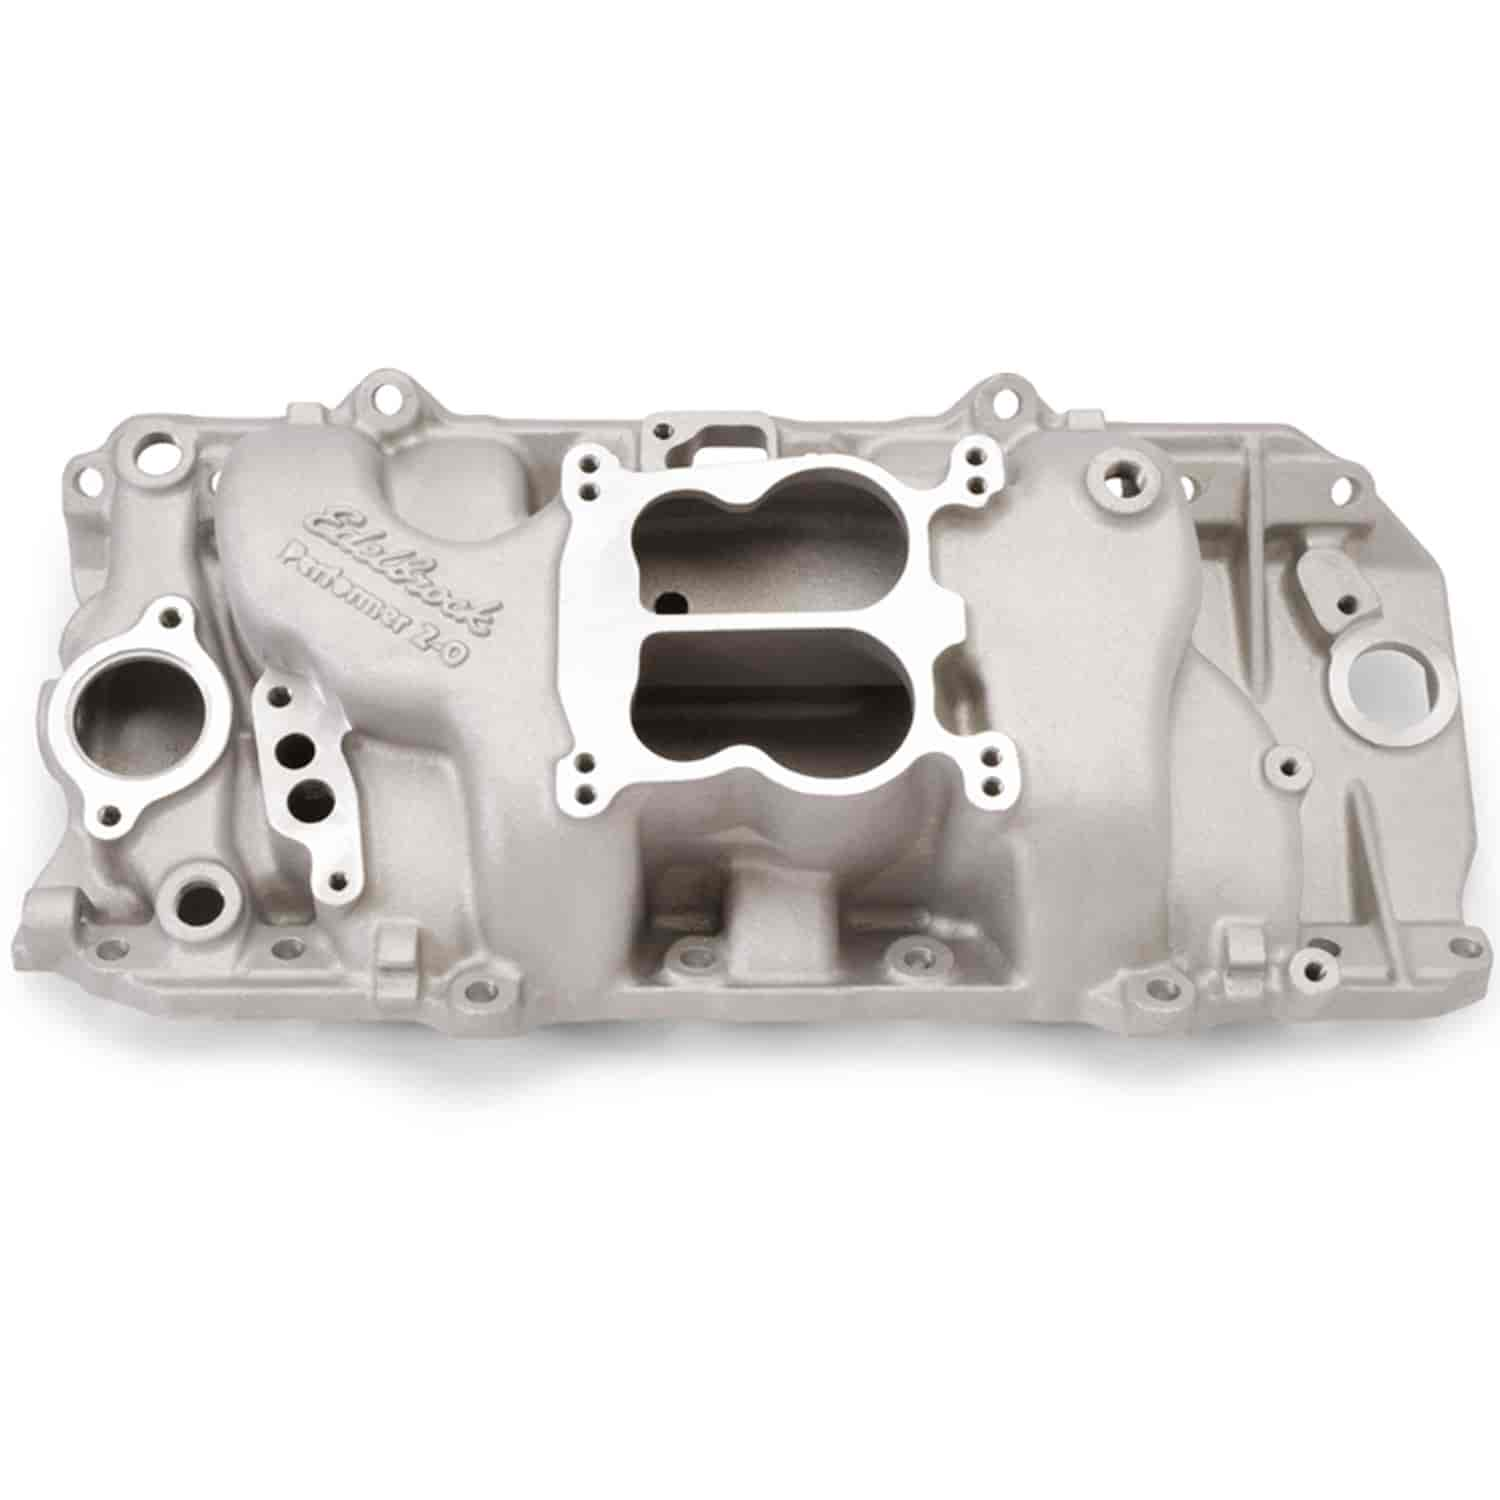 Edelbrock 3761 - Edelbrock Performer Intake Manifolds for Chevy